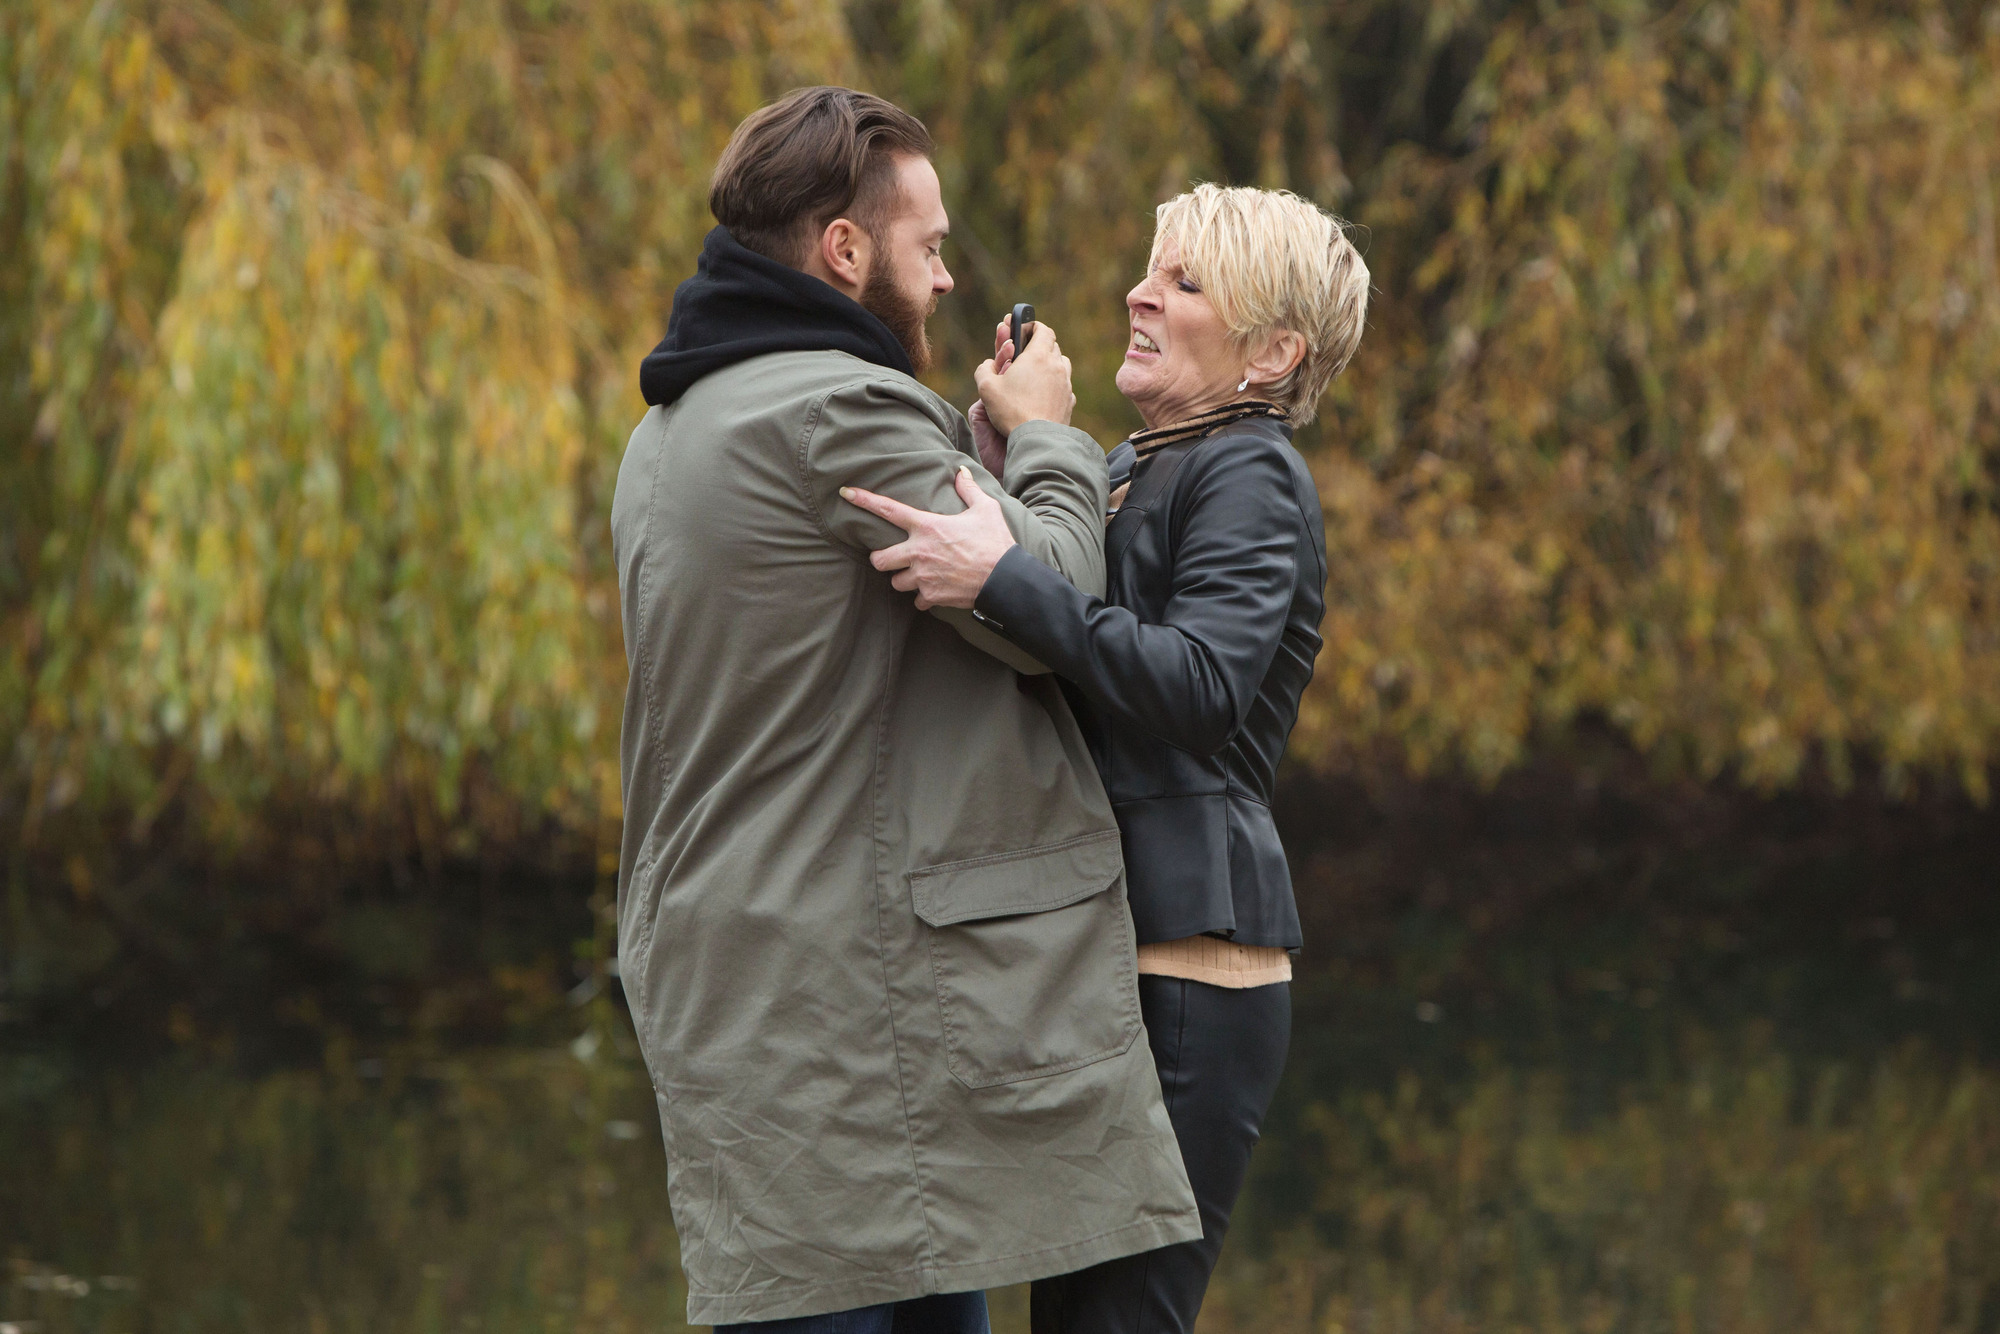 WARNING: Embargoed for publication until 00:00:01 on 05/12/2015 - Programme Name: EastEnders - TX: 29/12/2015 - Episode: 5202 (No. n/a) - Picture Shows: Shirley begs Dean not to spoil Mick and Linda's big day. Shirley Carter (LINDA HENRY), Dean Wicks (MATT DI ANGELO) - (C) BBC - Photographer: Jack Barnes